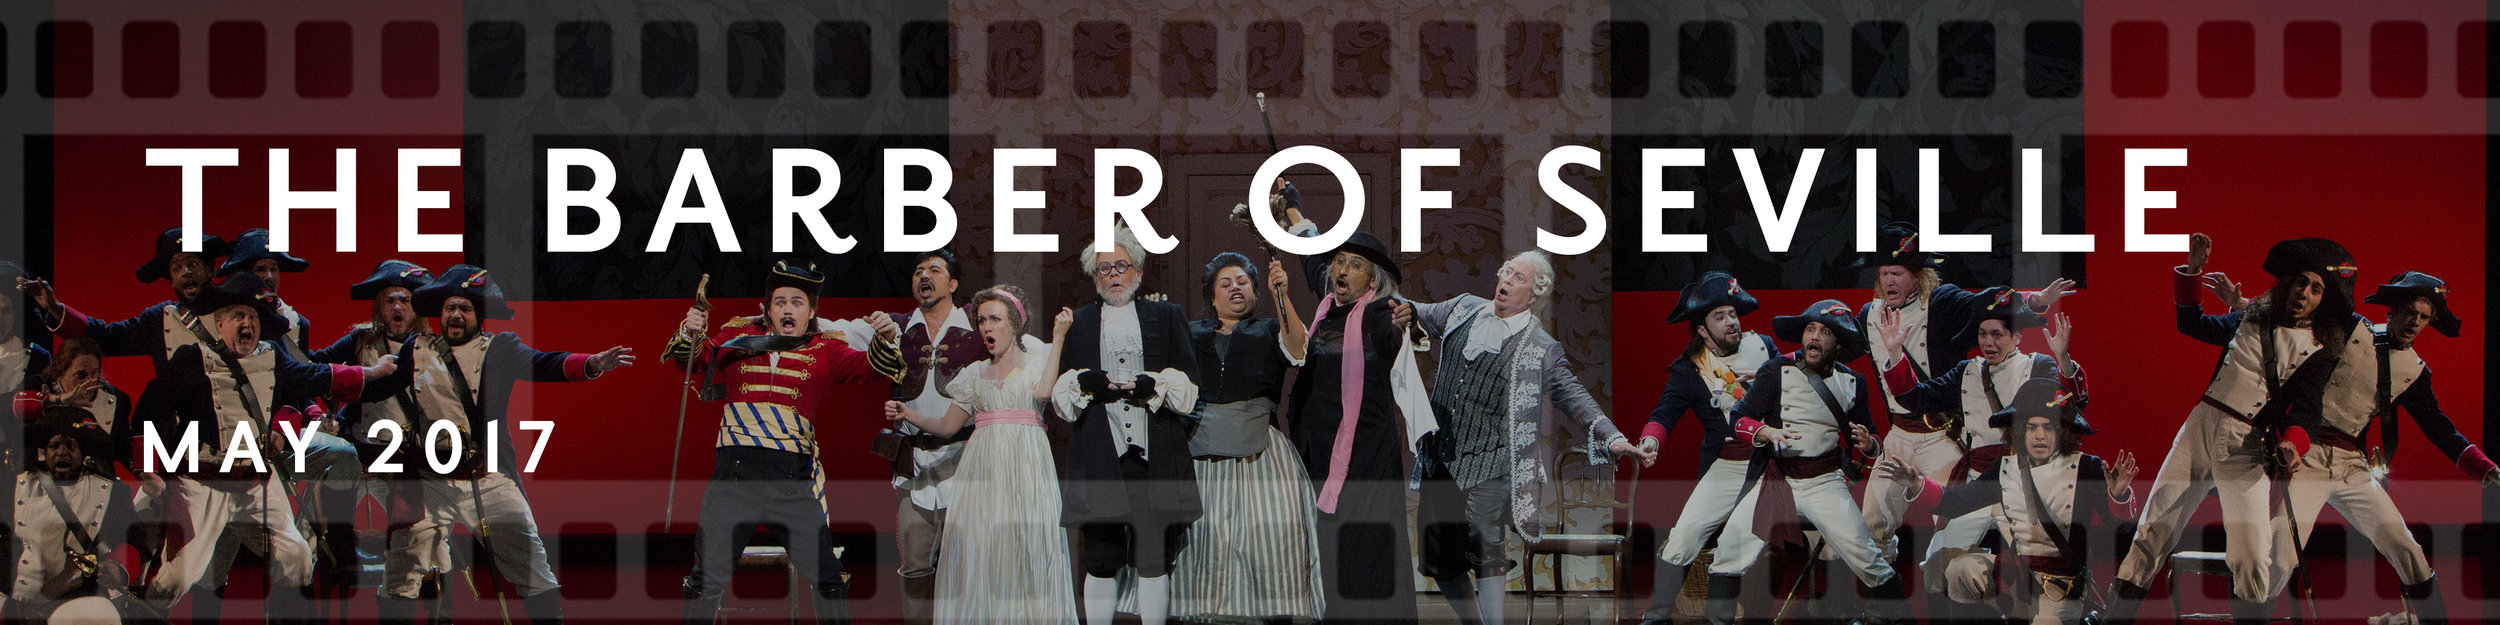 THE-BARBER-OF-SEVILLE_Video-Gallery-Button.jpg